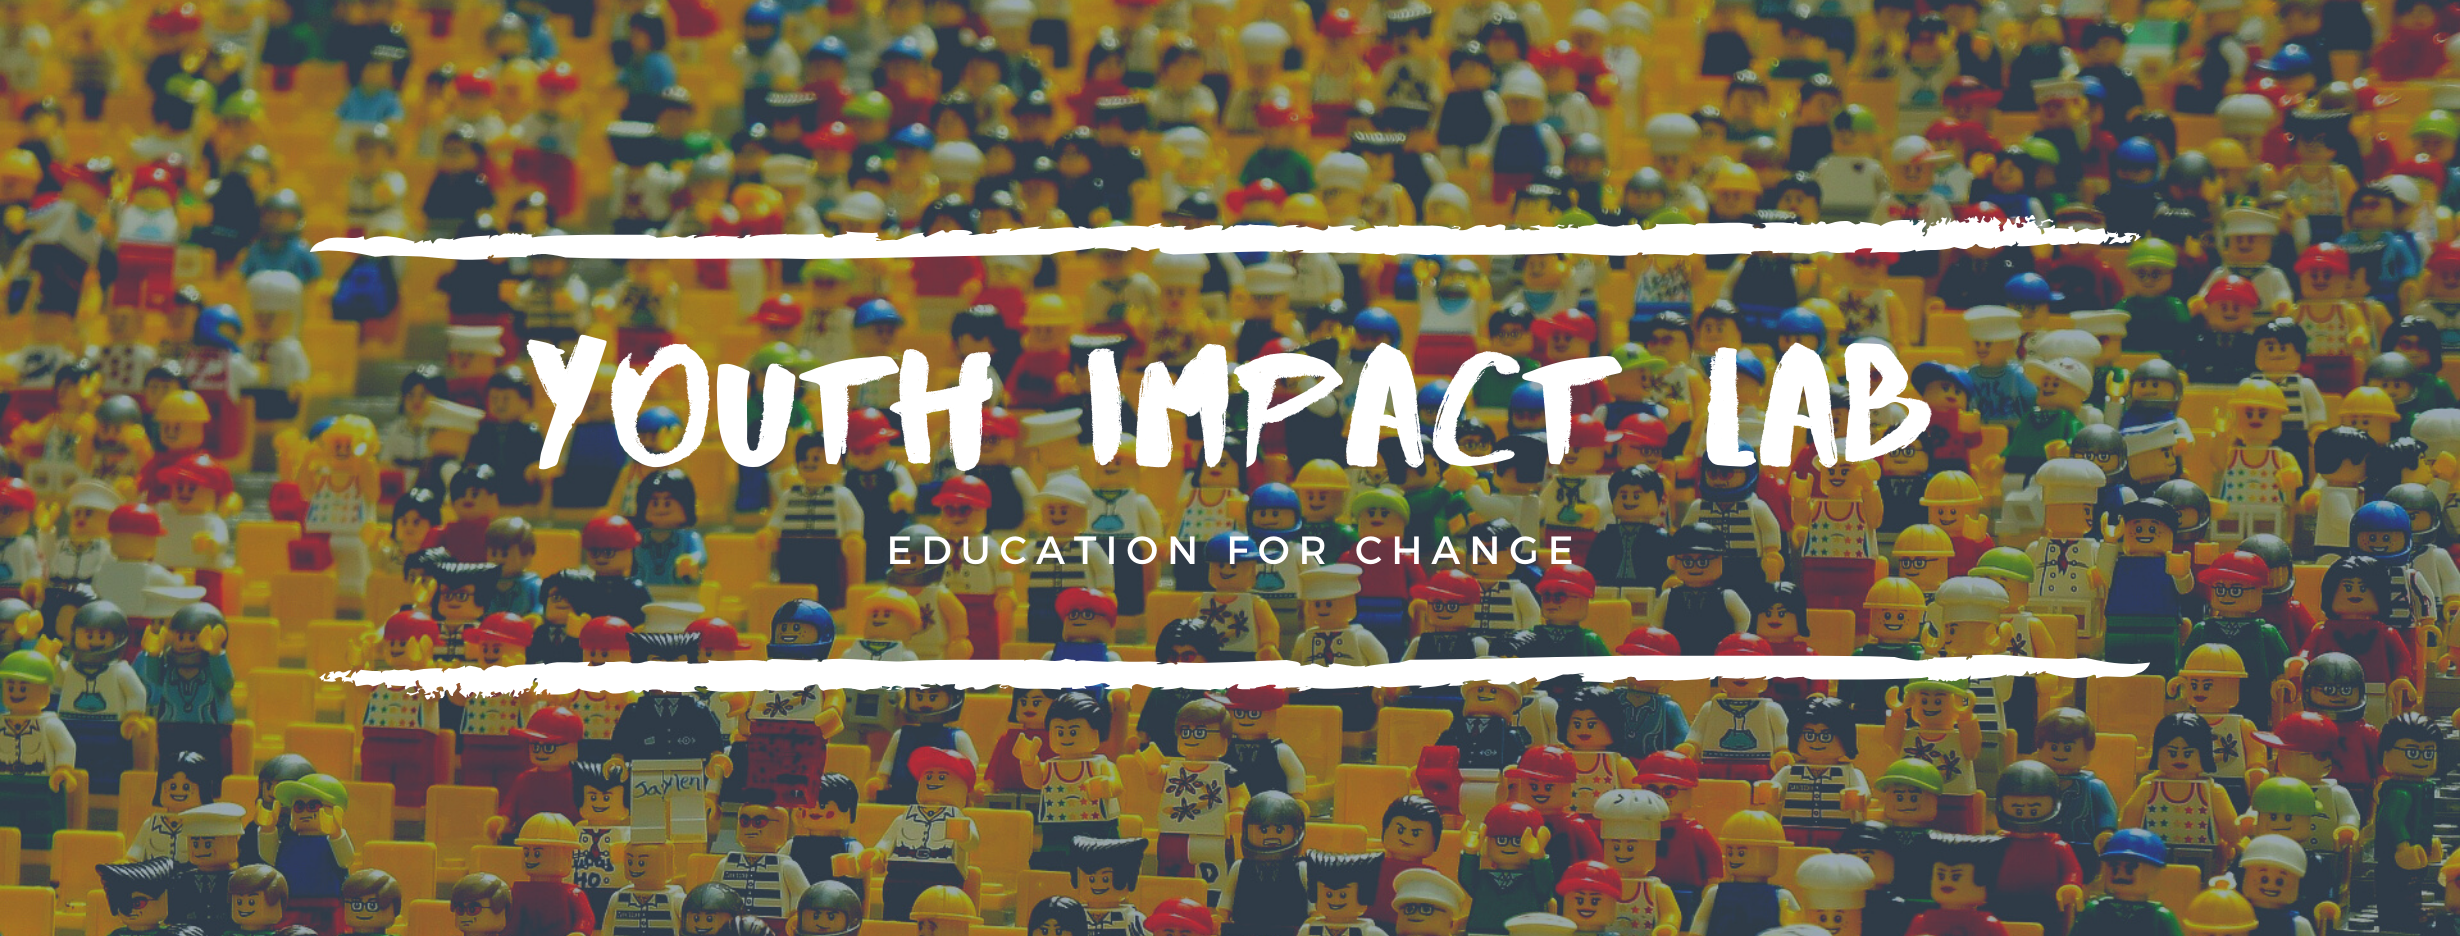 Youth Impact Lab - Education For Change